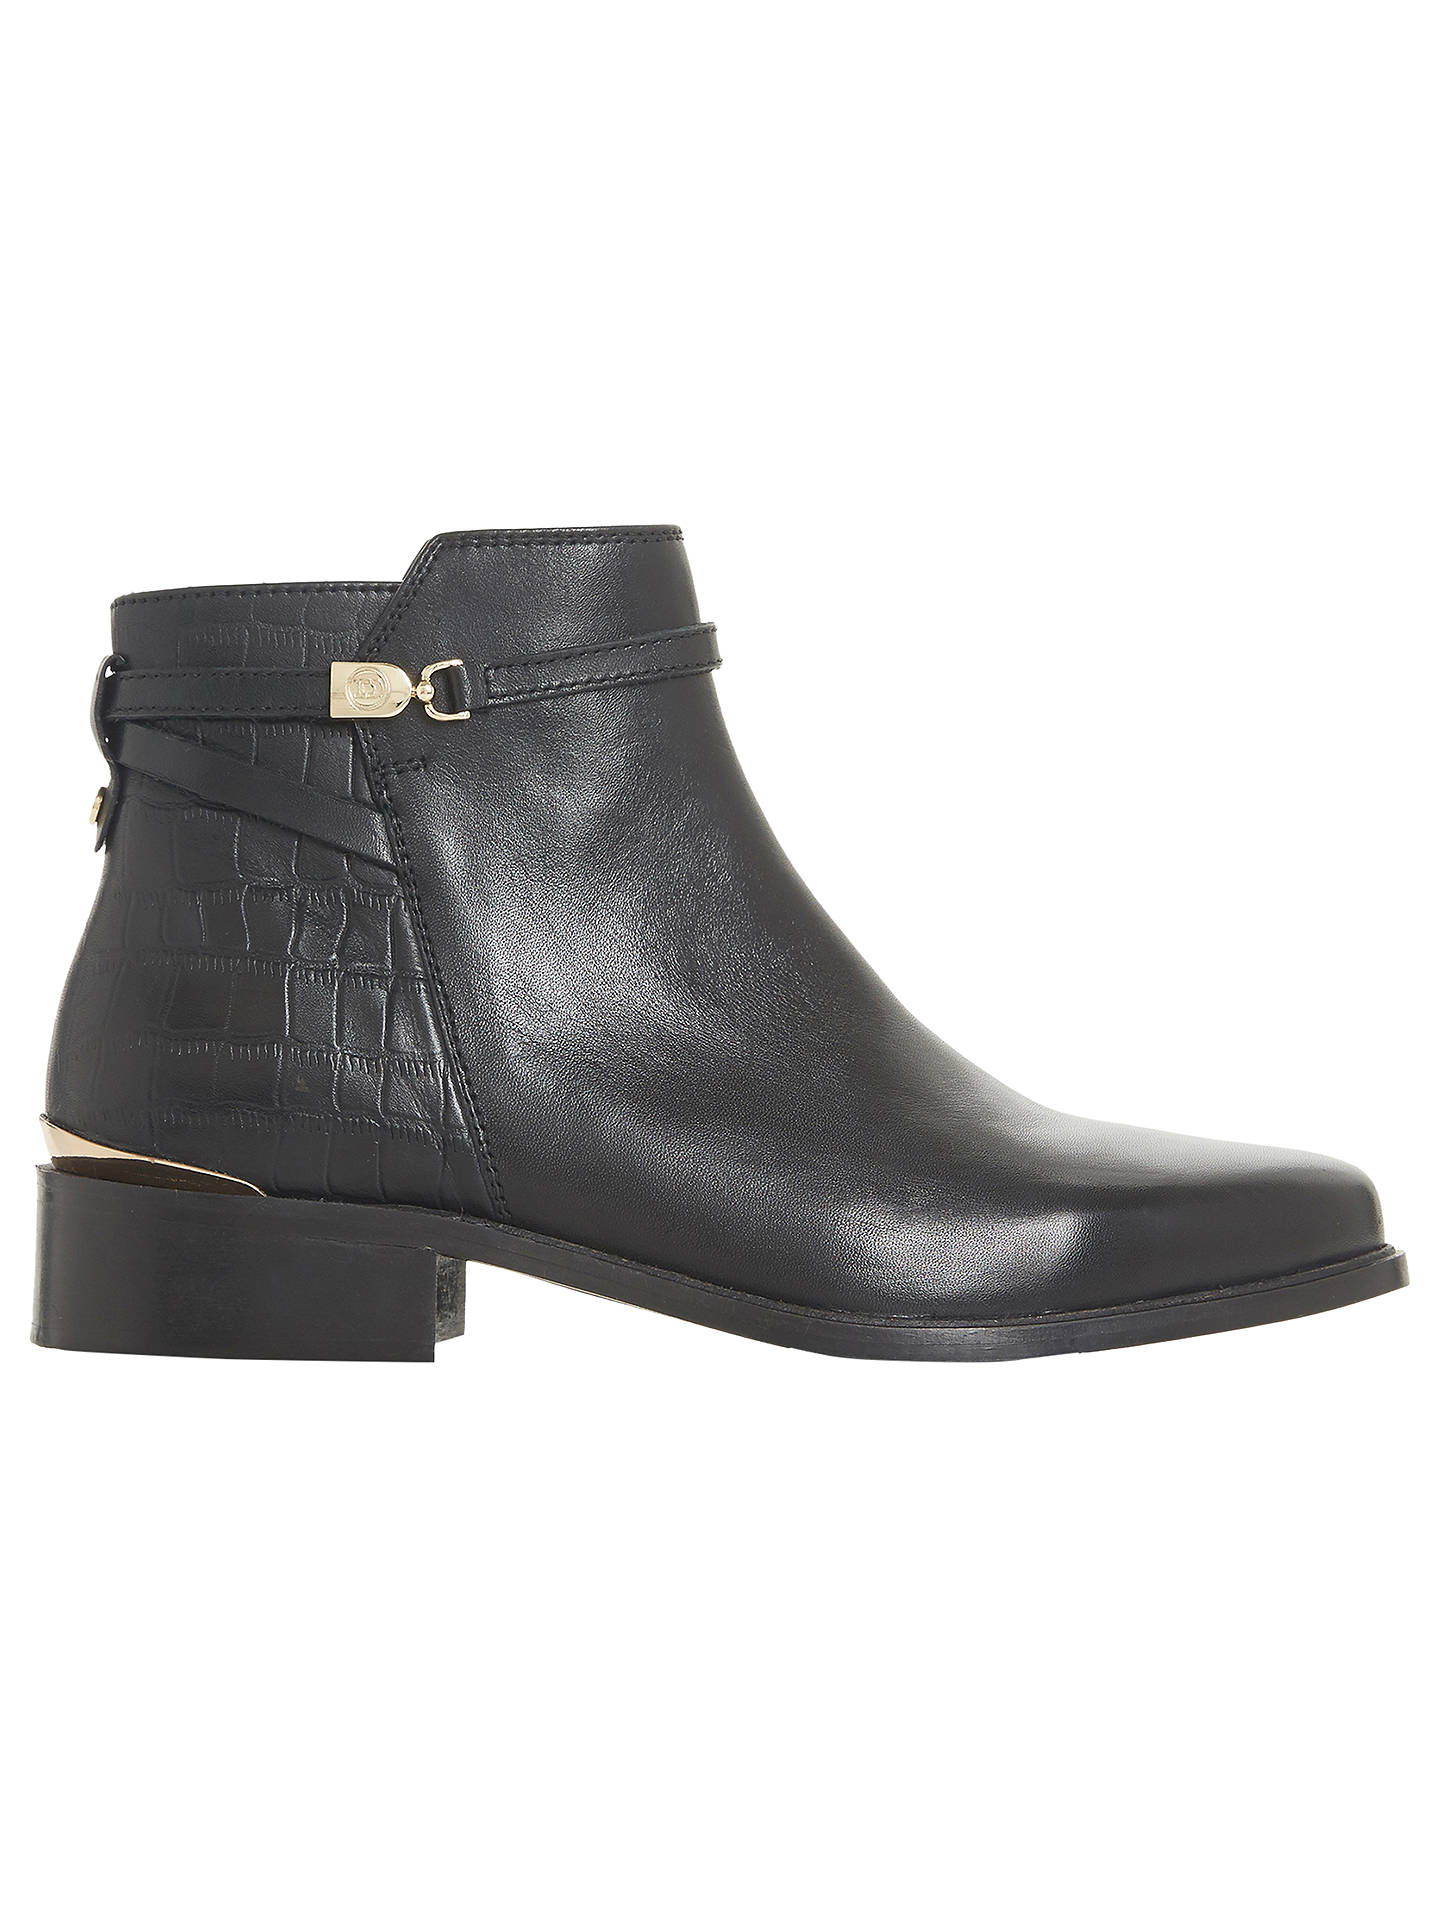 f4005c76be1 Dune Peppy Block Heel Ankle Chelsea Boots, Black Leather at John ...